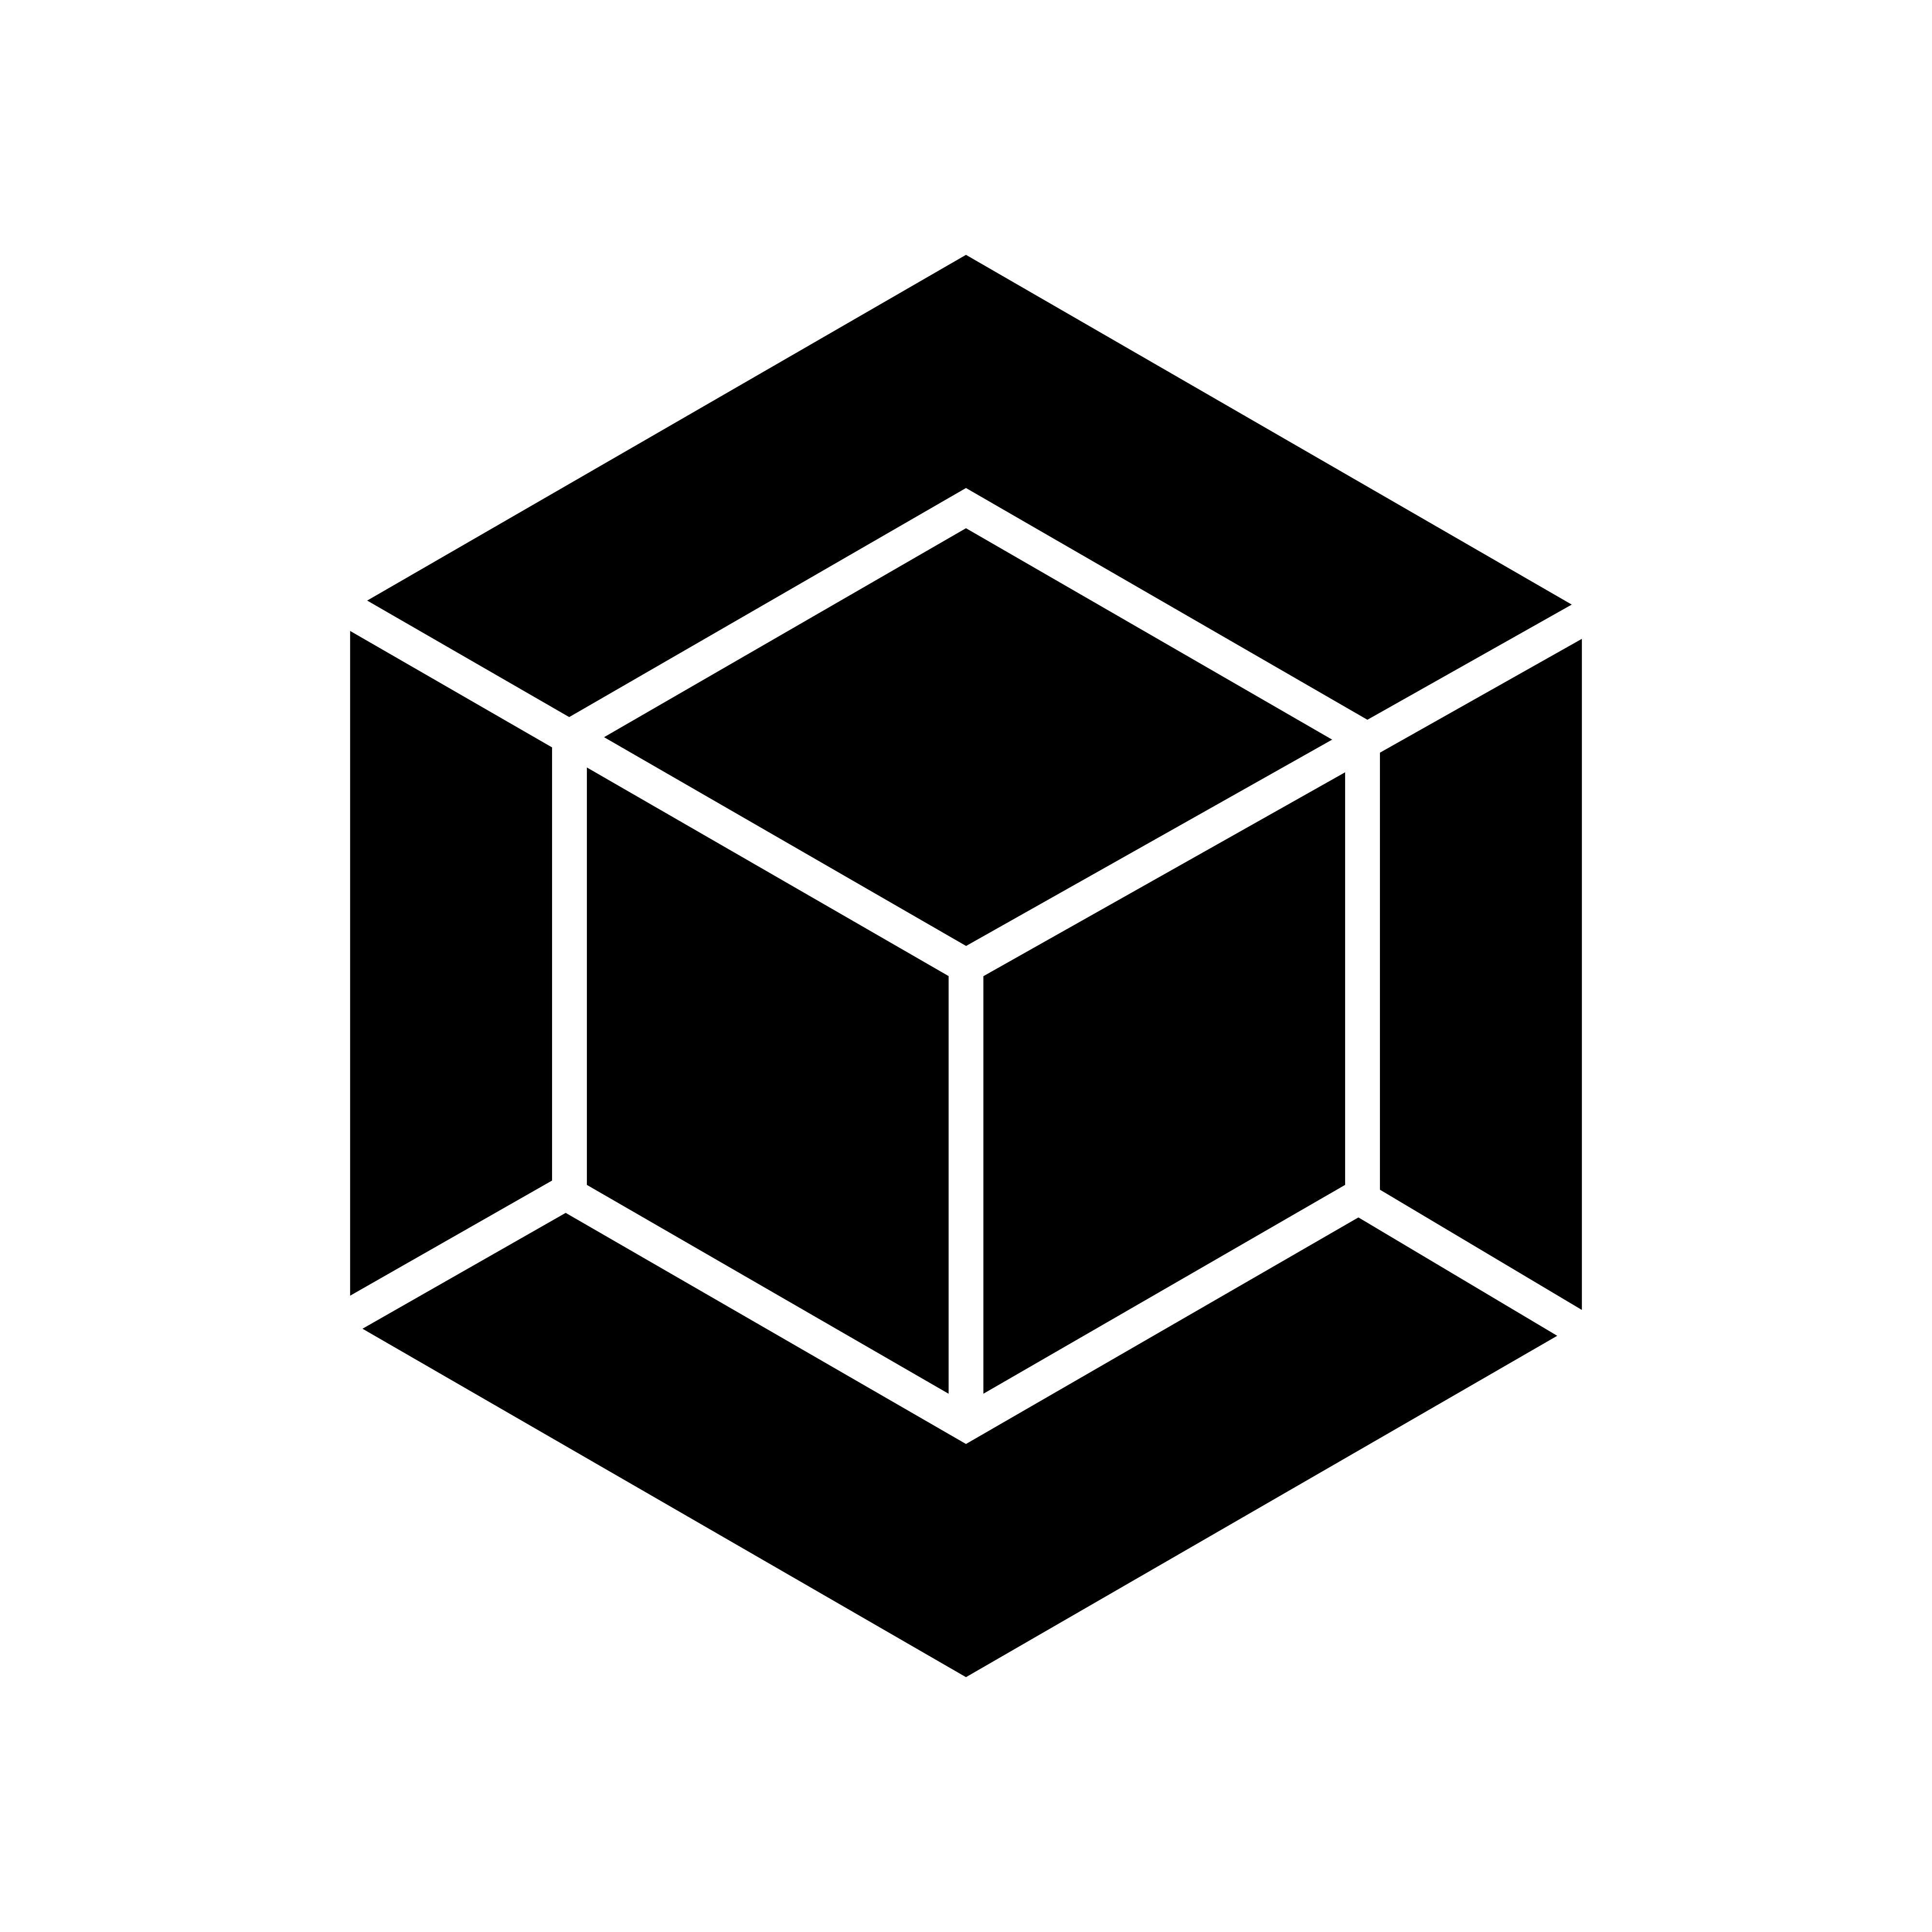 Cool png logos. Geometrical cube logo template